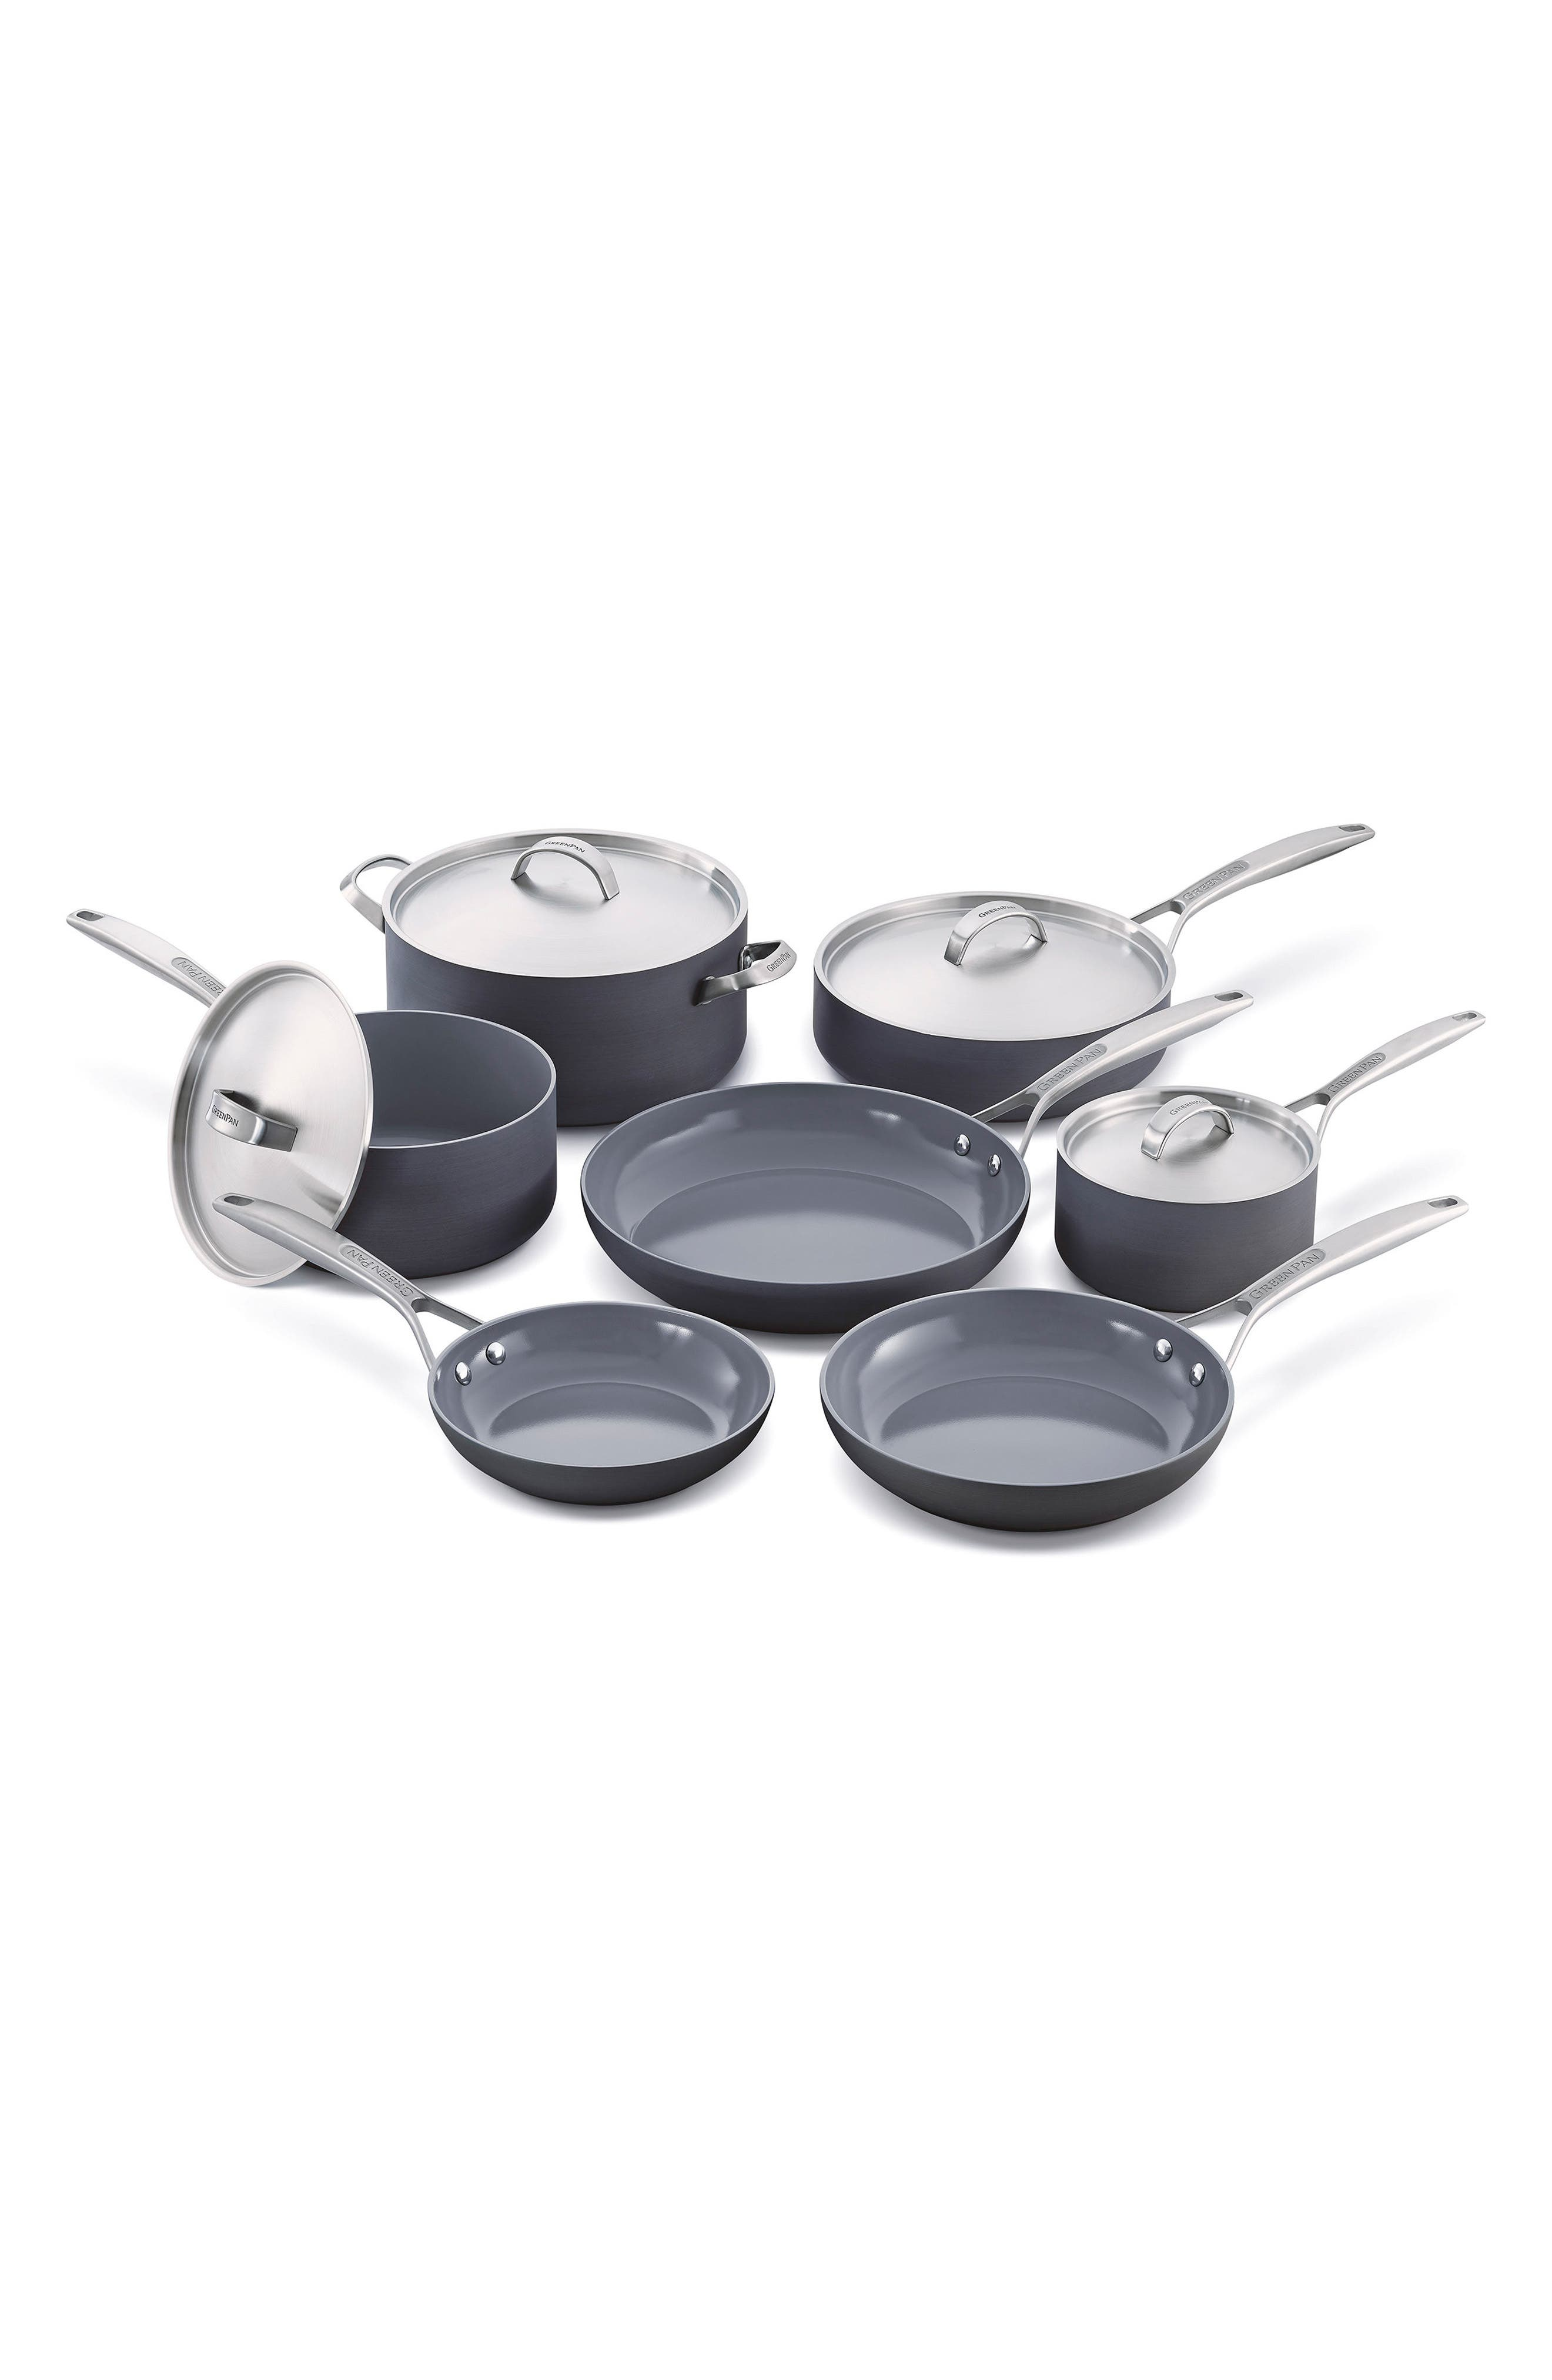 Paris Pro 11-Piece Anodized Aluminum Ceramic Cookware Set,                             Main thumbnail 1, color,                             Grey